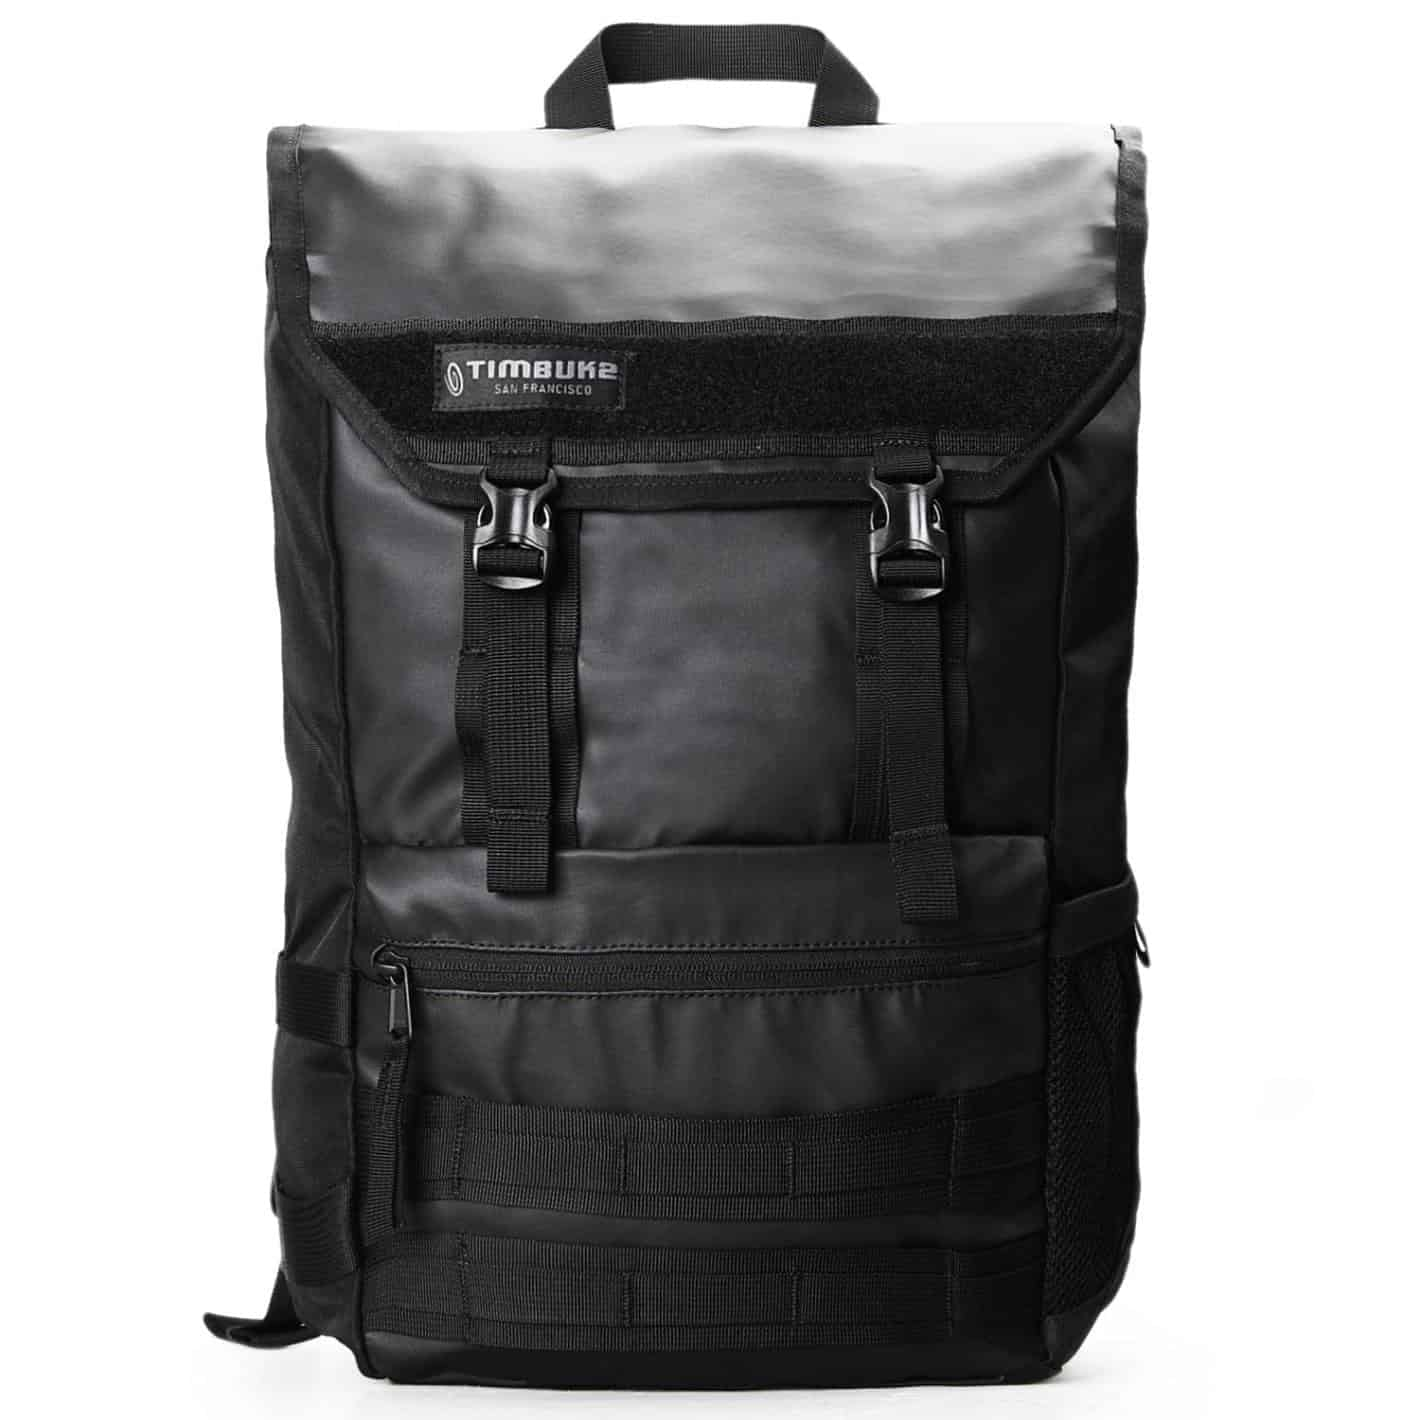 Holiday Gift Guide 2016 - 2017: Top 10 Best Laptop Bags ...